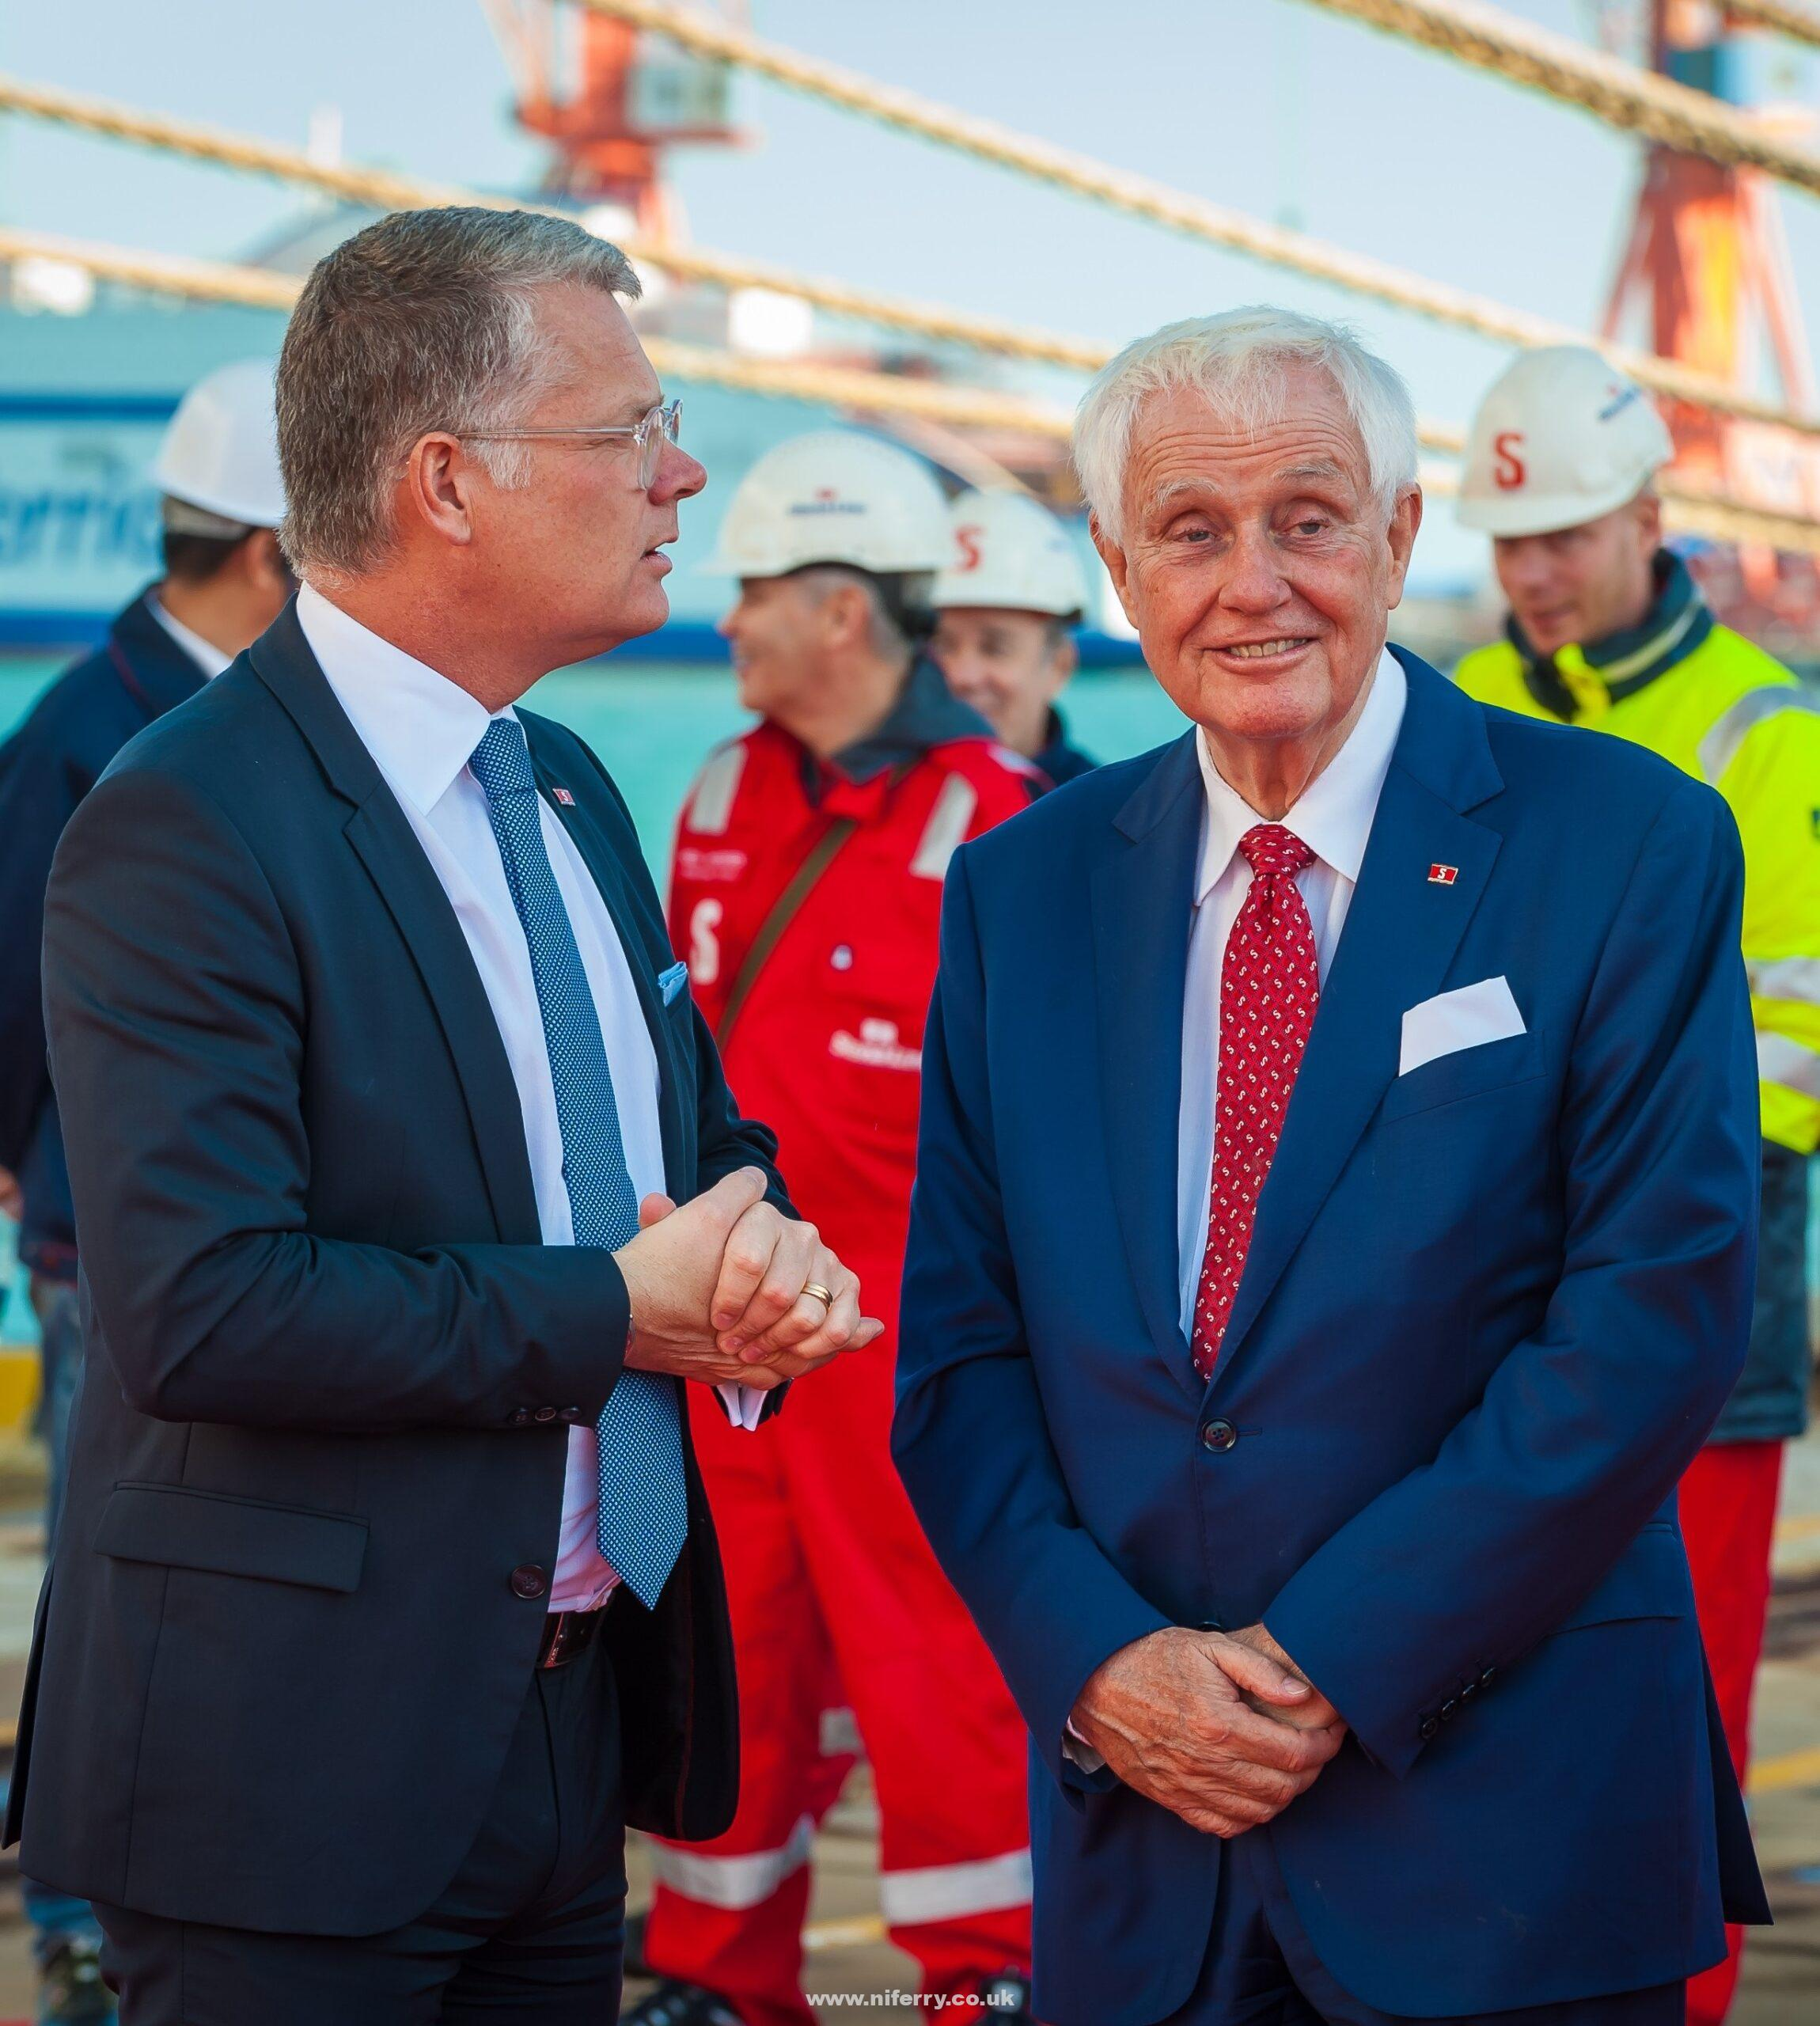 Dan Olsson owner of Stena Line CEO Niclas Martensson at the AVIC Weihai shipyard in China at the signing ceremony for Stena Estrid. Stena Line.